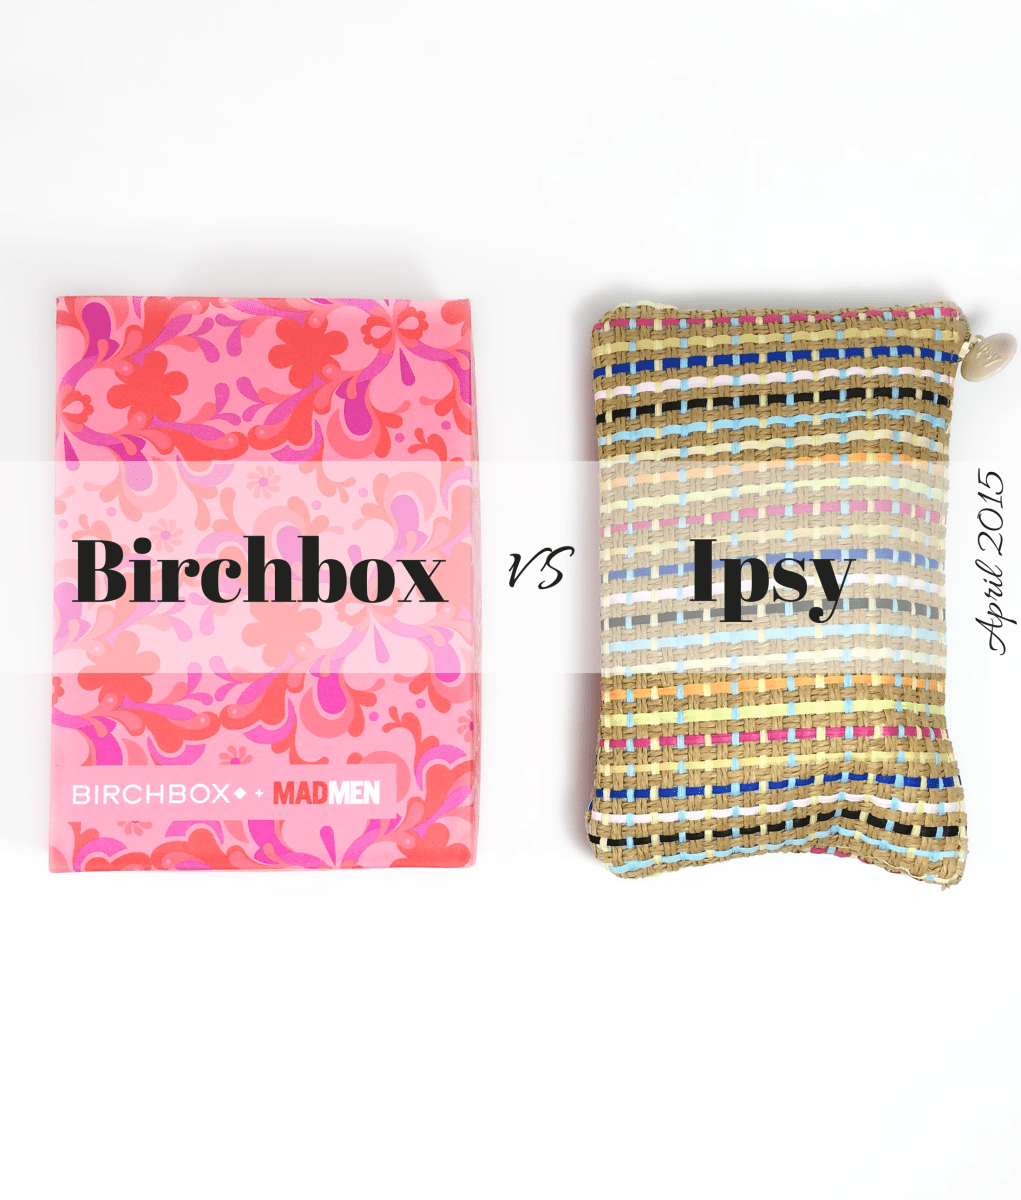 Ipsy vs Birchbox | April 2015